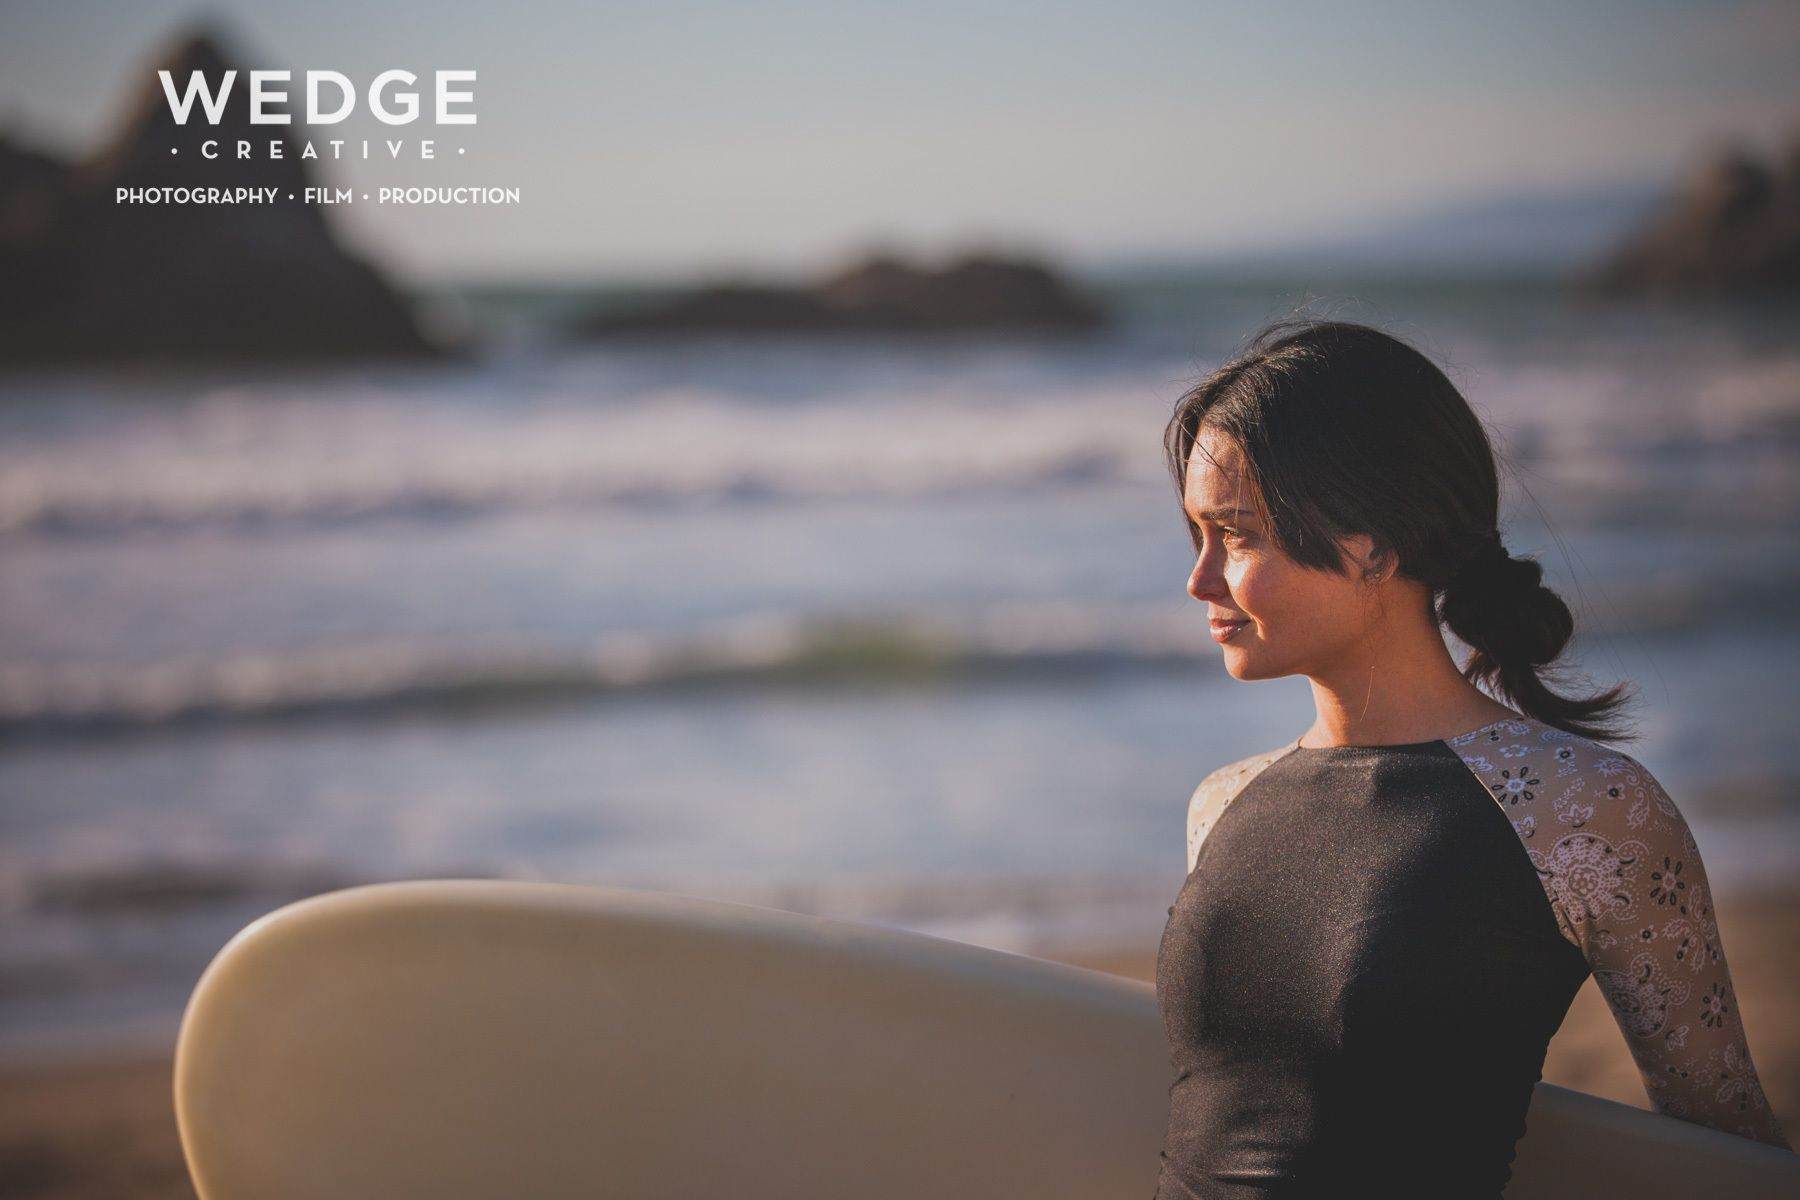 © WEDGE Creative: Photography, Film, Production